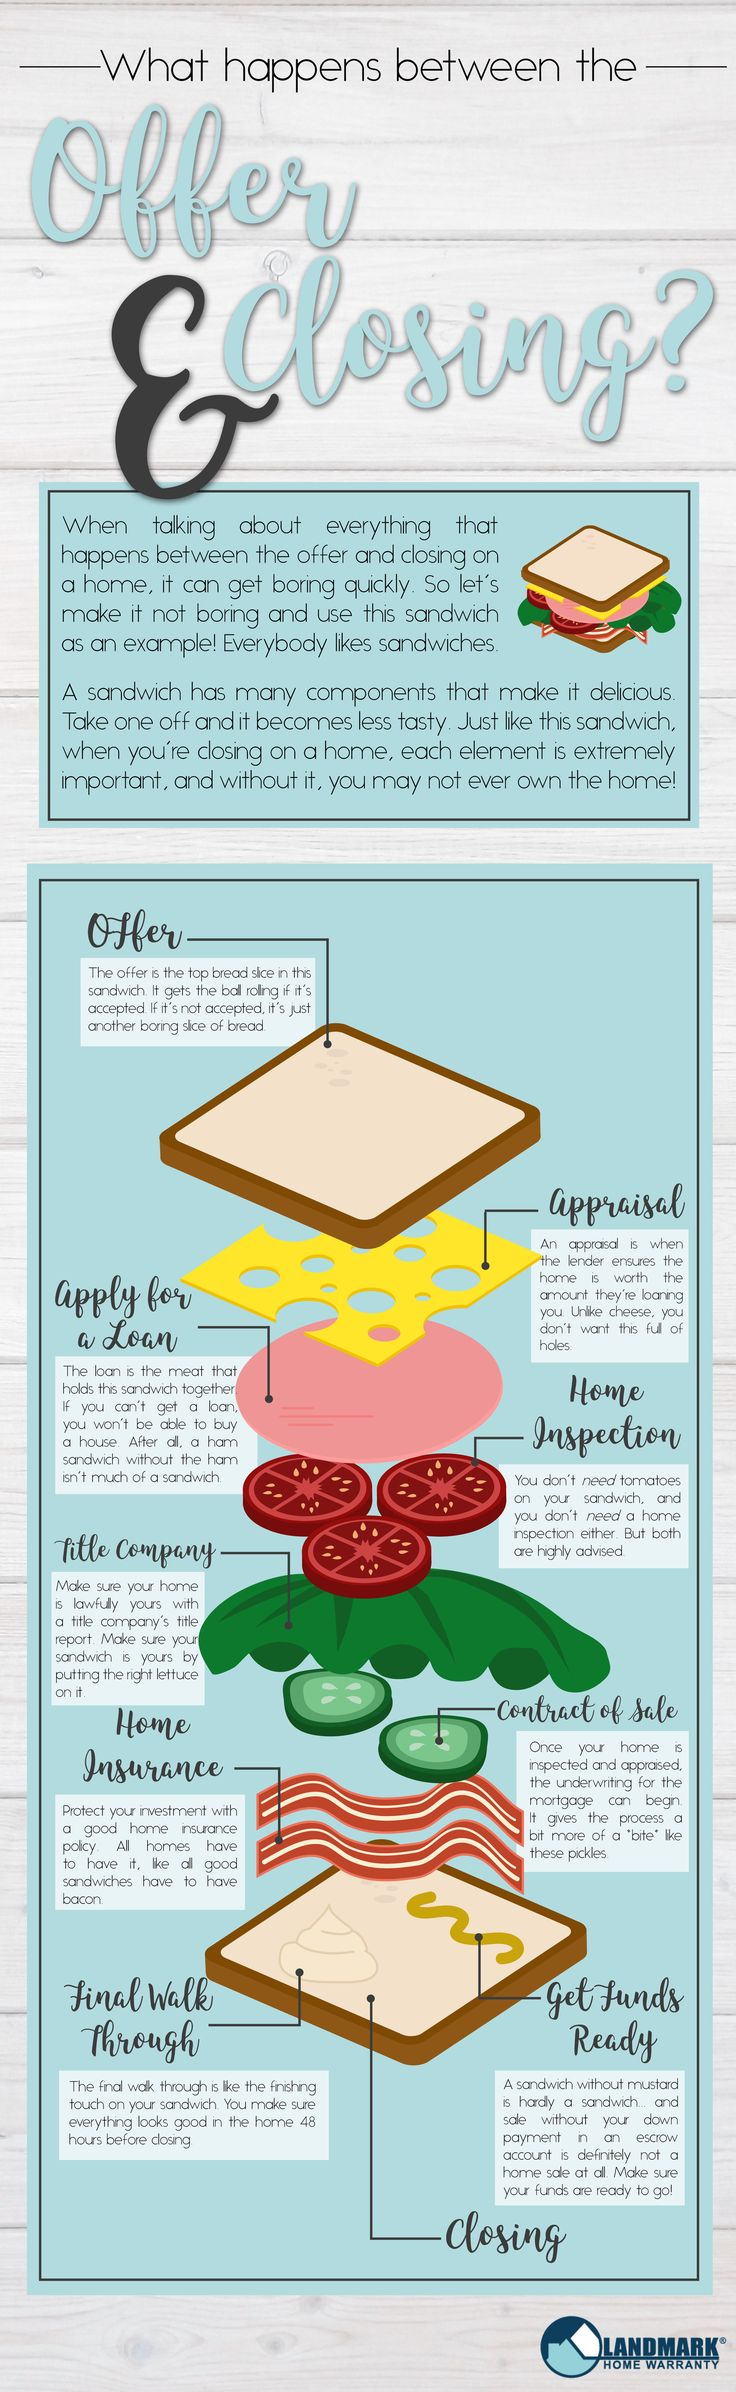 Make Real Estate fun! Here's everything that happens between making an offer on a home and closing on the home in a fun infographic sandwich form.